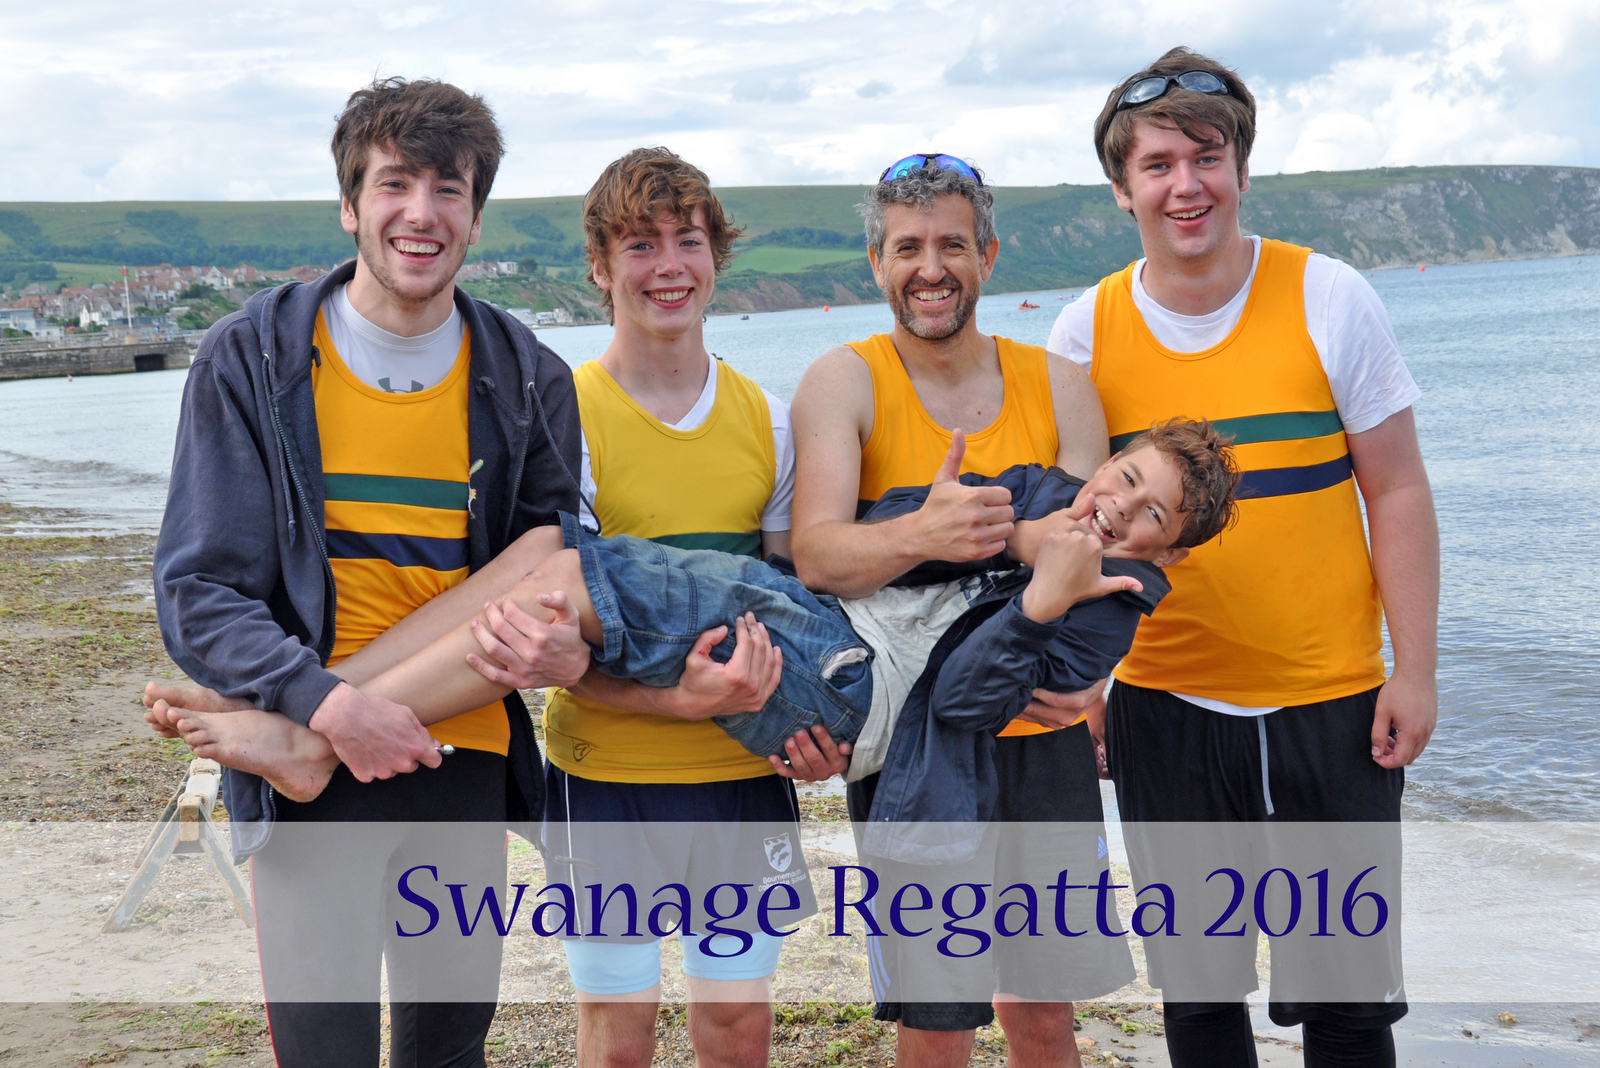 Swanage Regatta